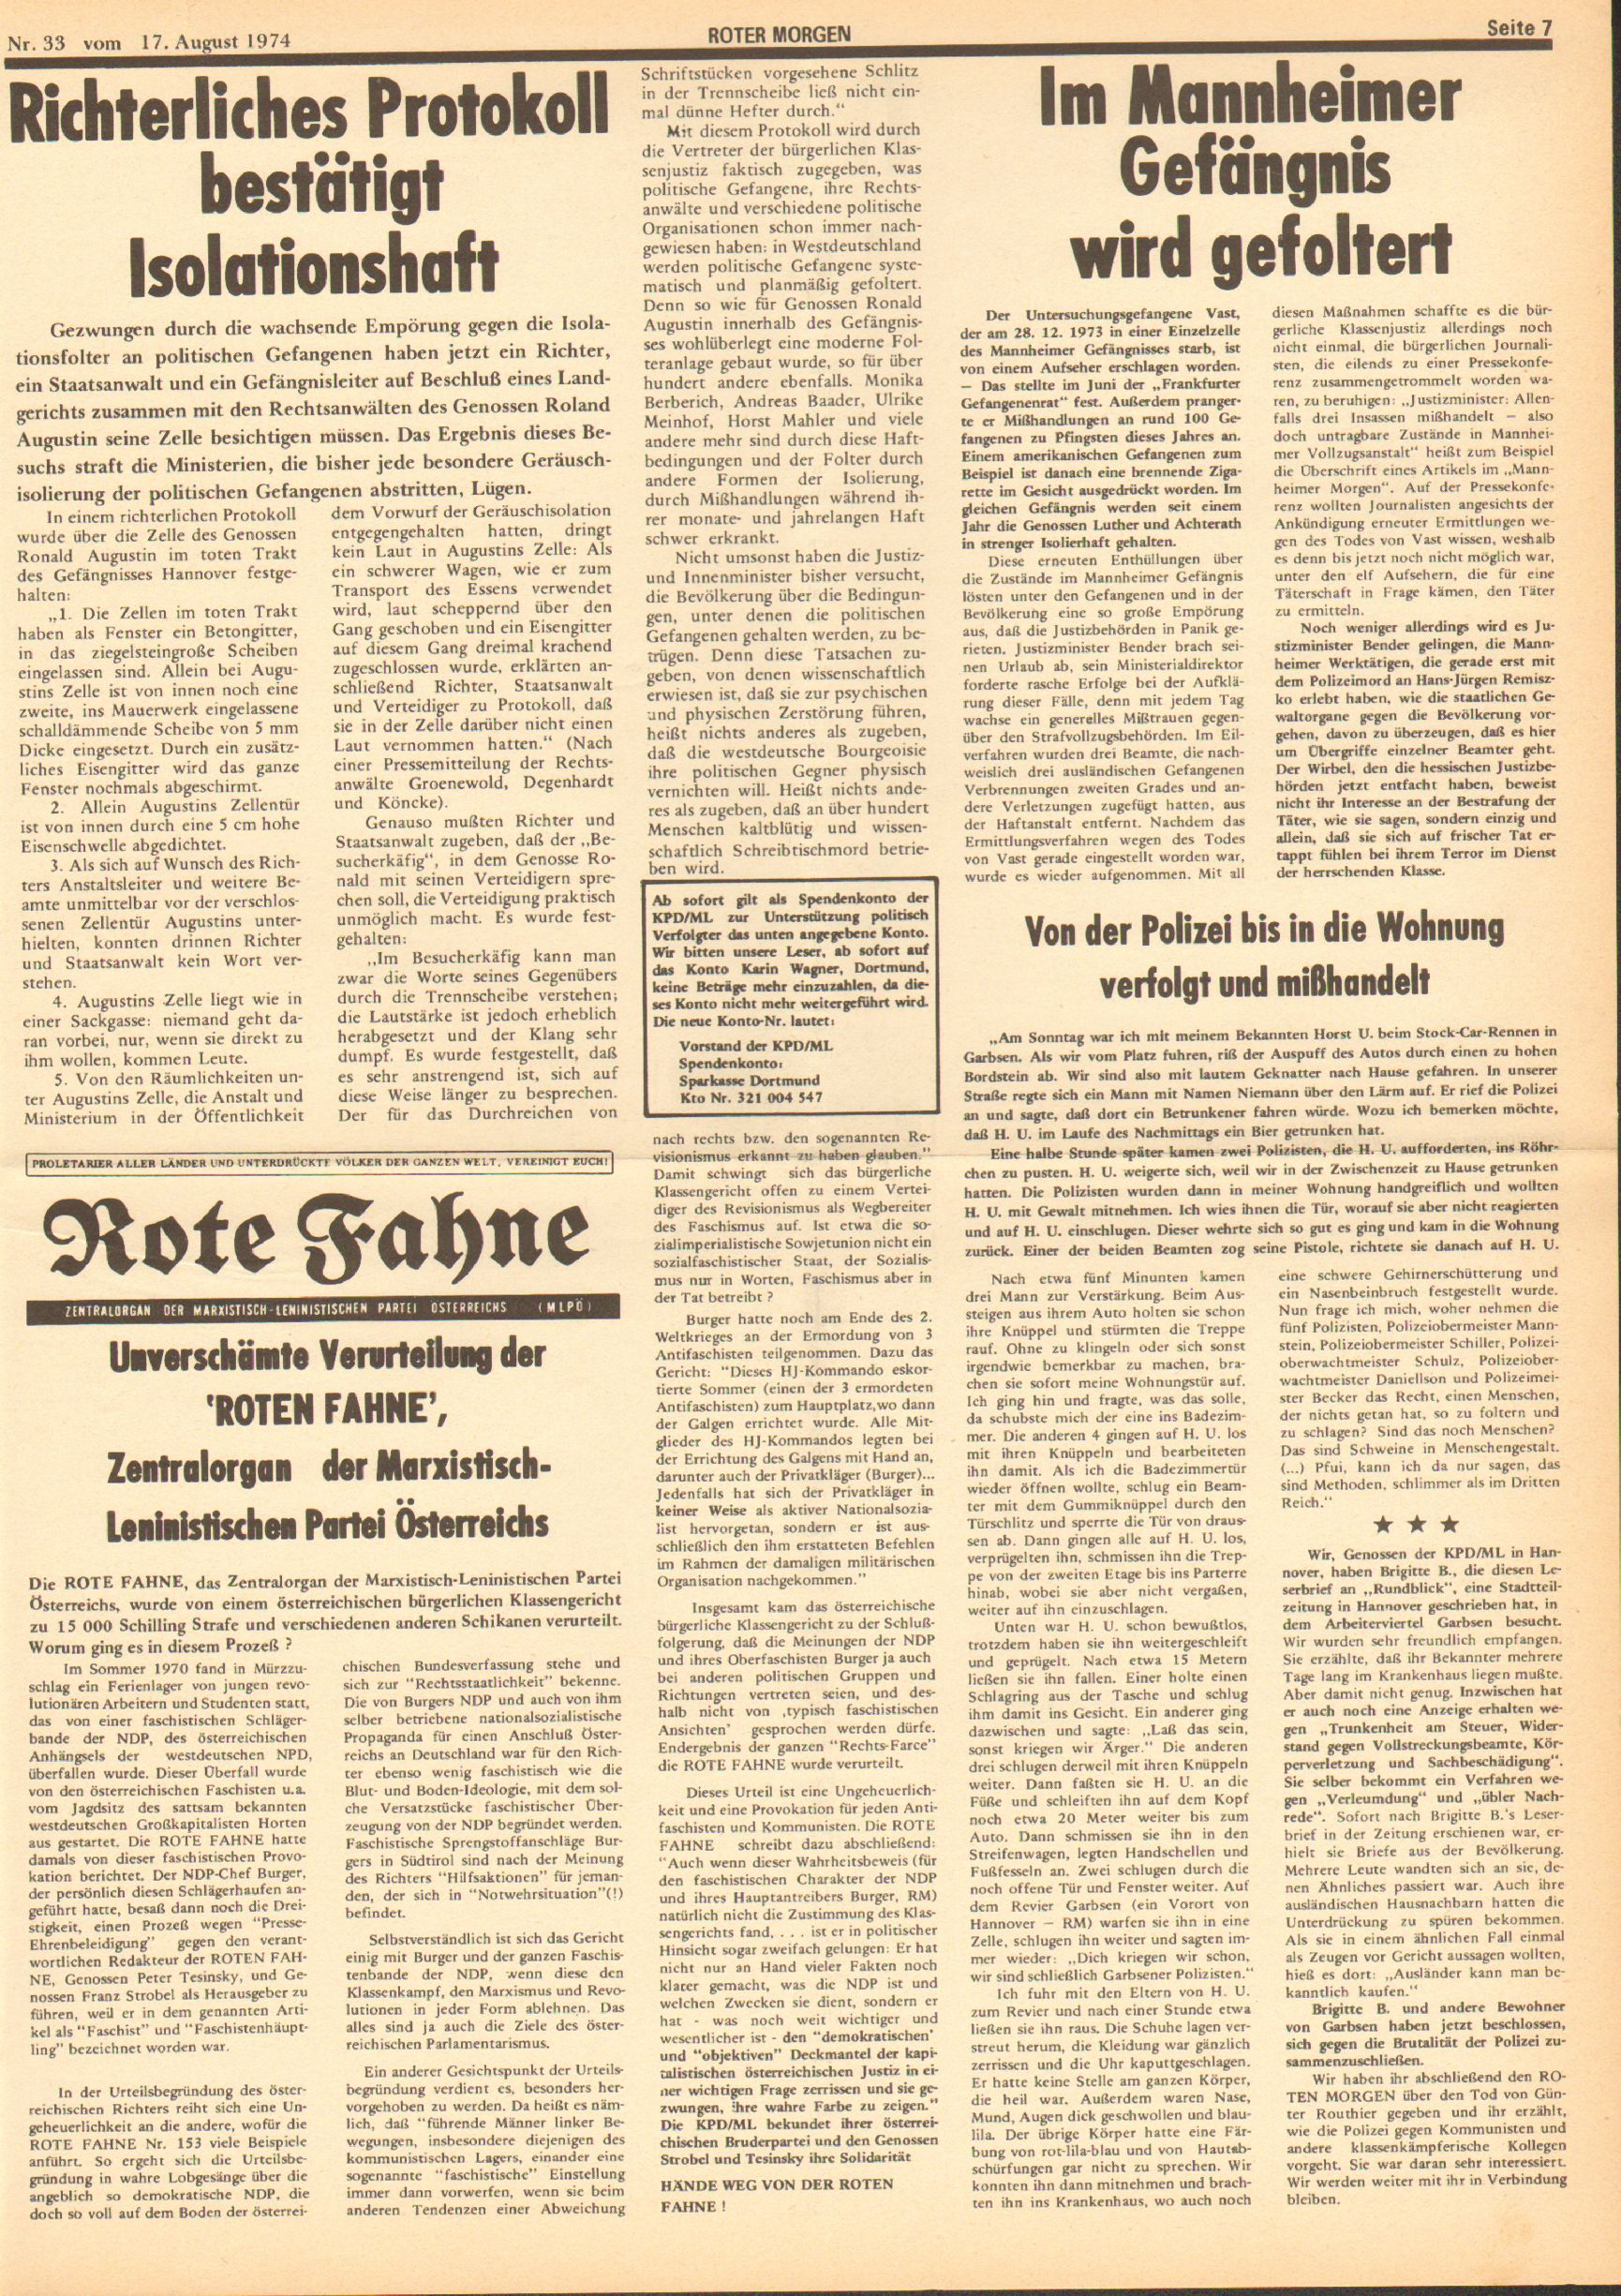 Roter Morgen, 8. Jg., 17. August 1974, Nr. 33, Seite 7